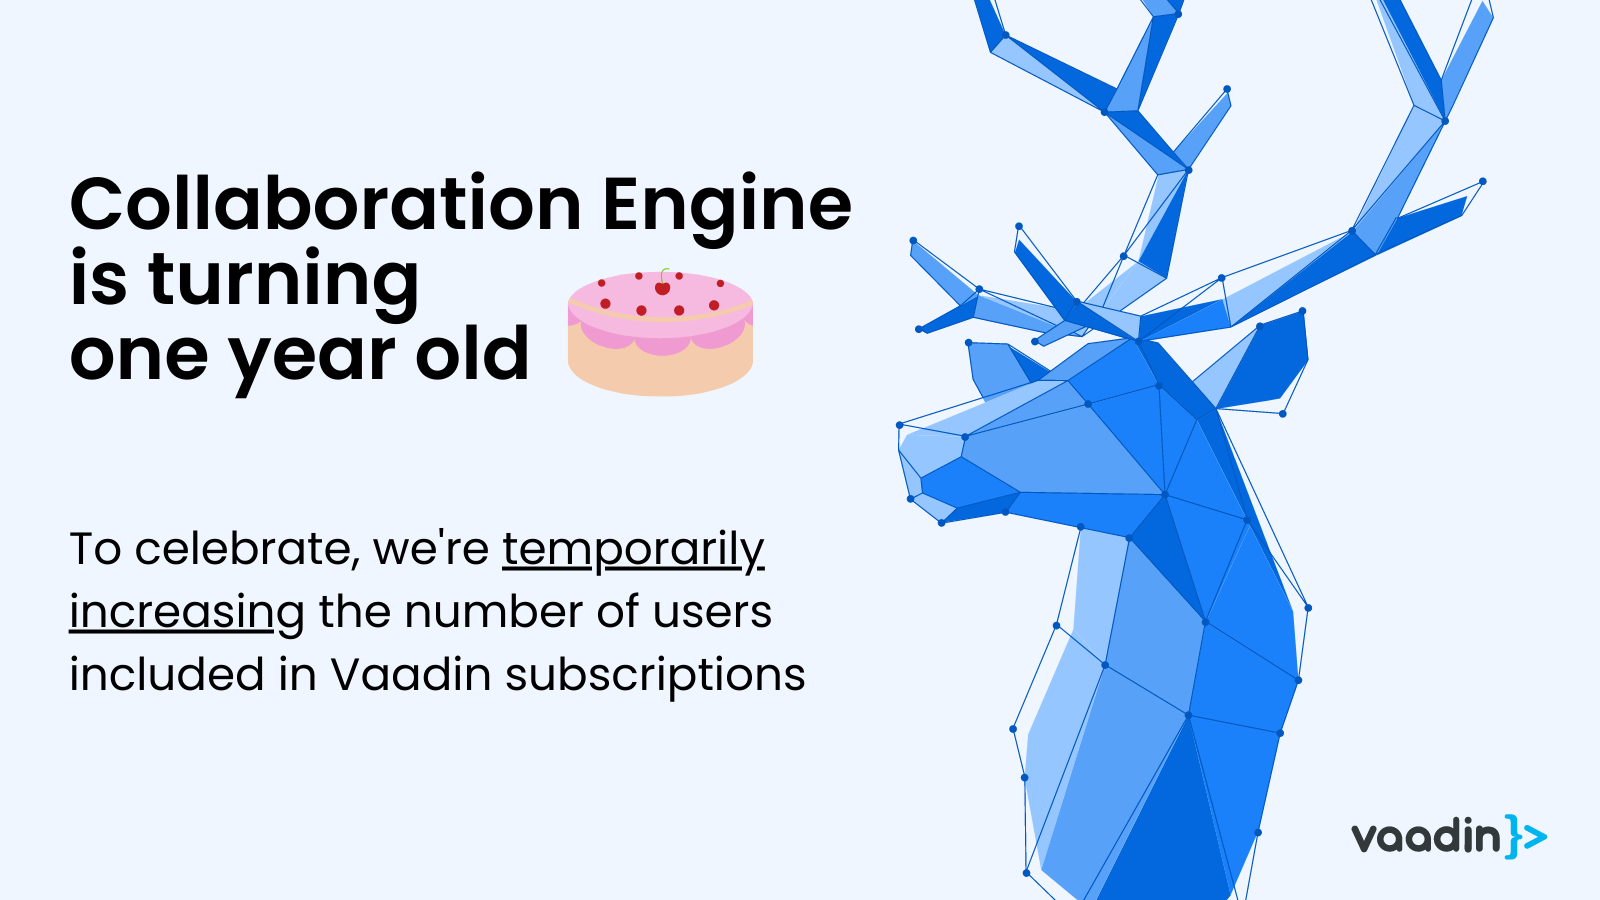 Featured image with Vaadin reindeer and celebrating collaboration engine turning one years old.